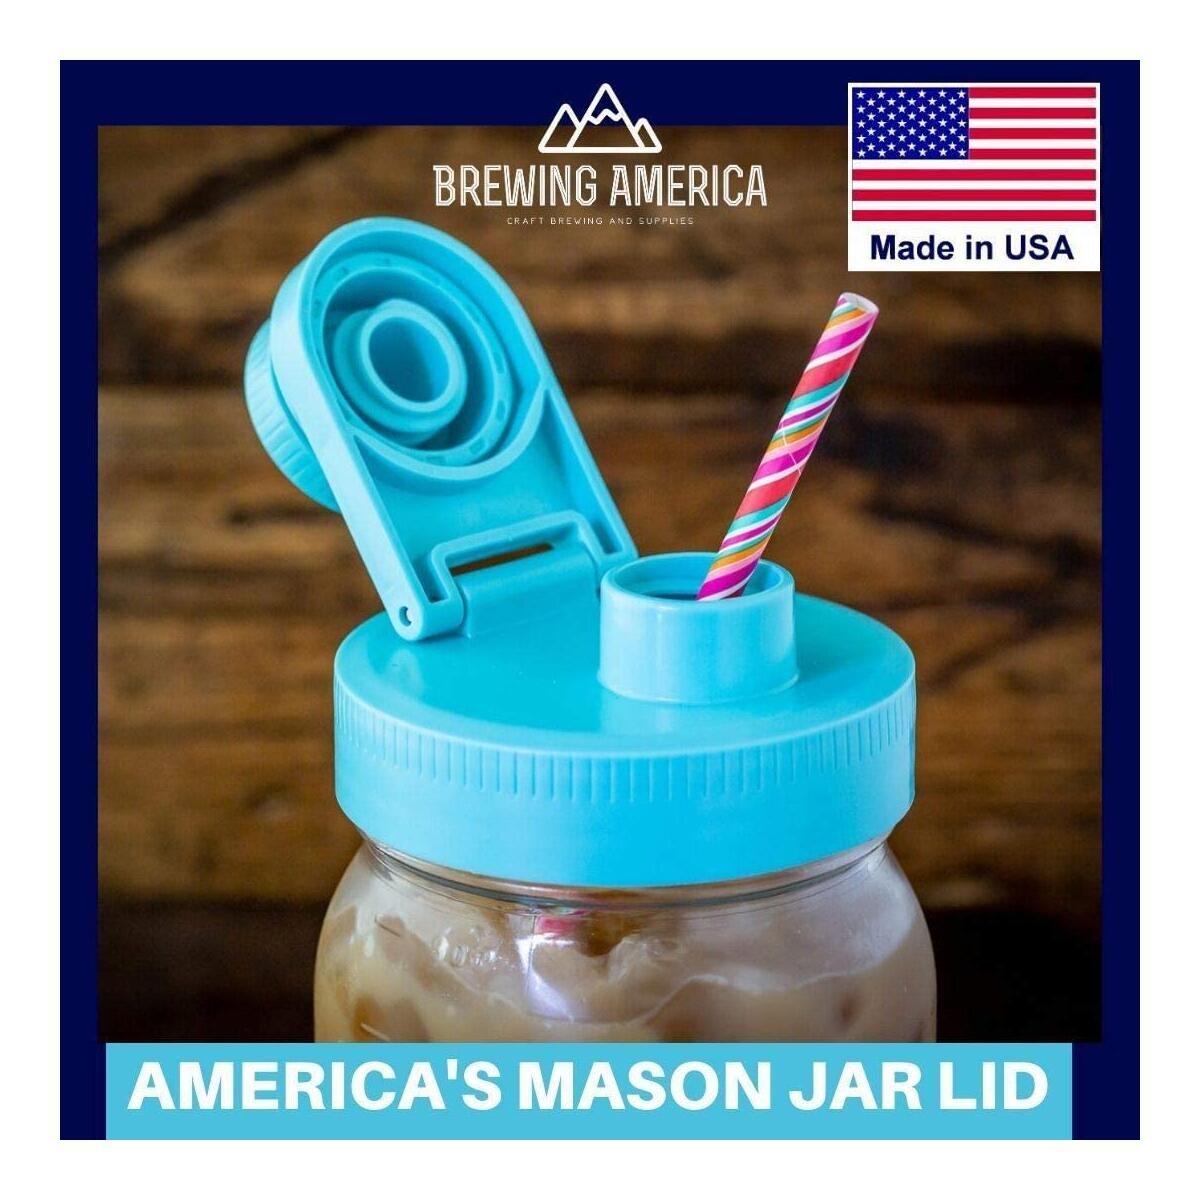 Mason Jar Lids Wide Mouth Plastic - With Flip Cap Pouring Spout and Drink Hole - Fits Kerr and Ball Canning Jars - Wet/Dry Food and Liquid Storage - MADE IN USA - Teal 4-pack